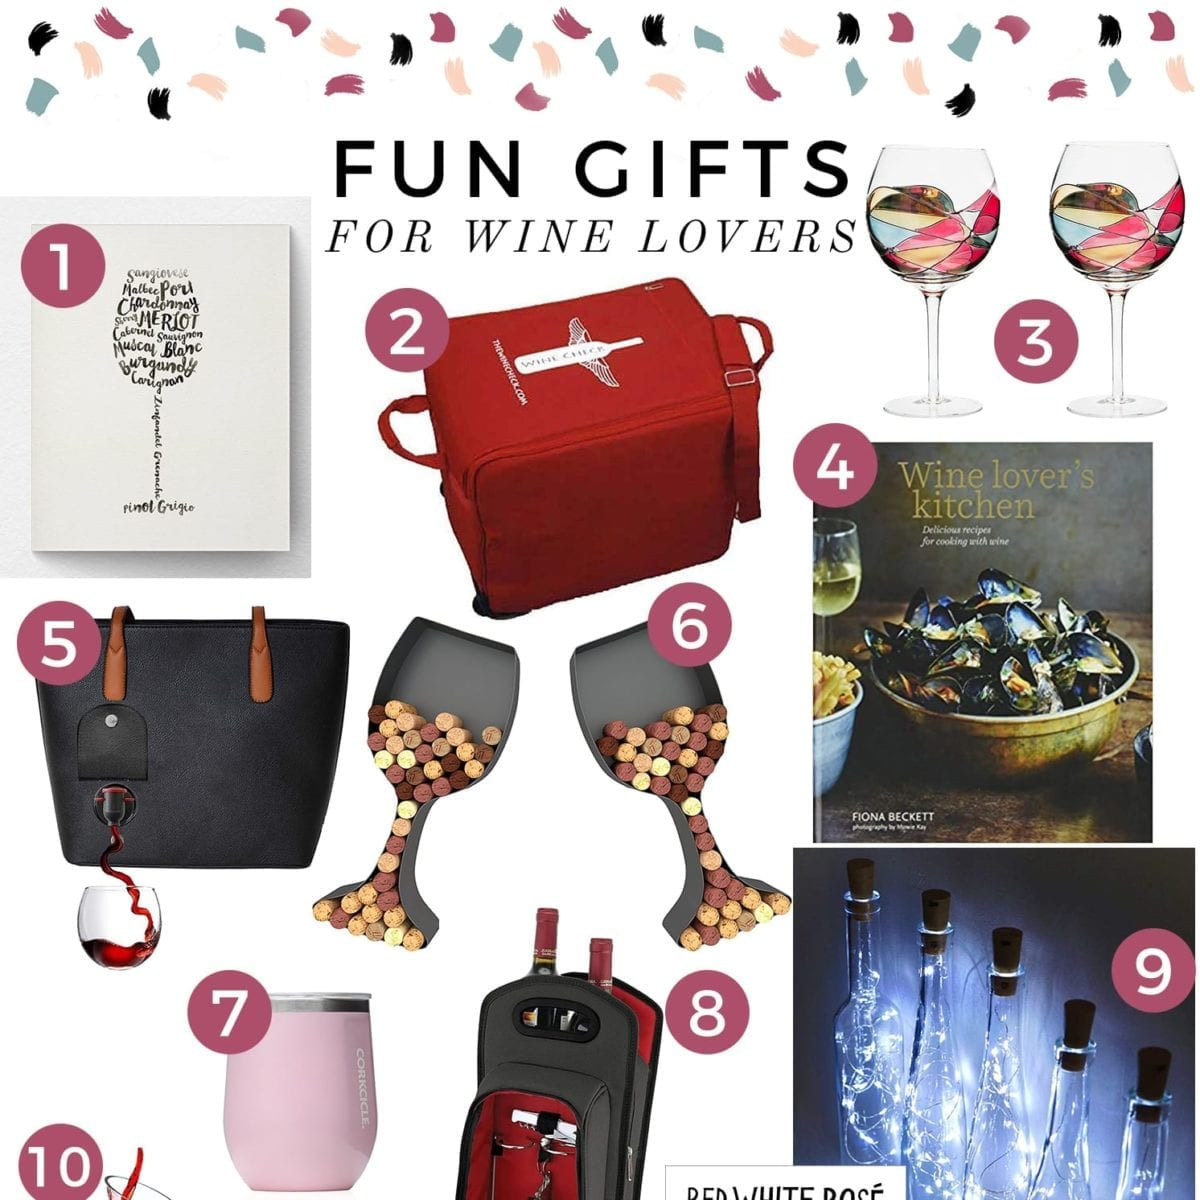 Square collage of 13 wine related gifts